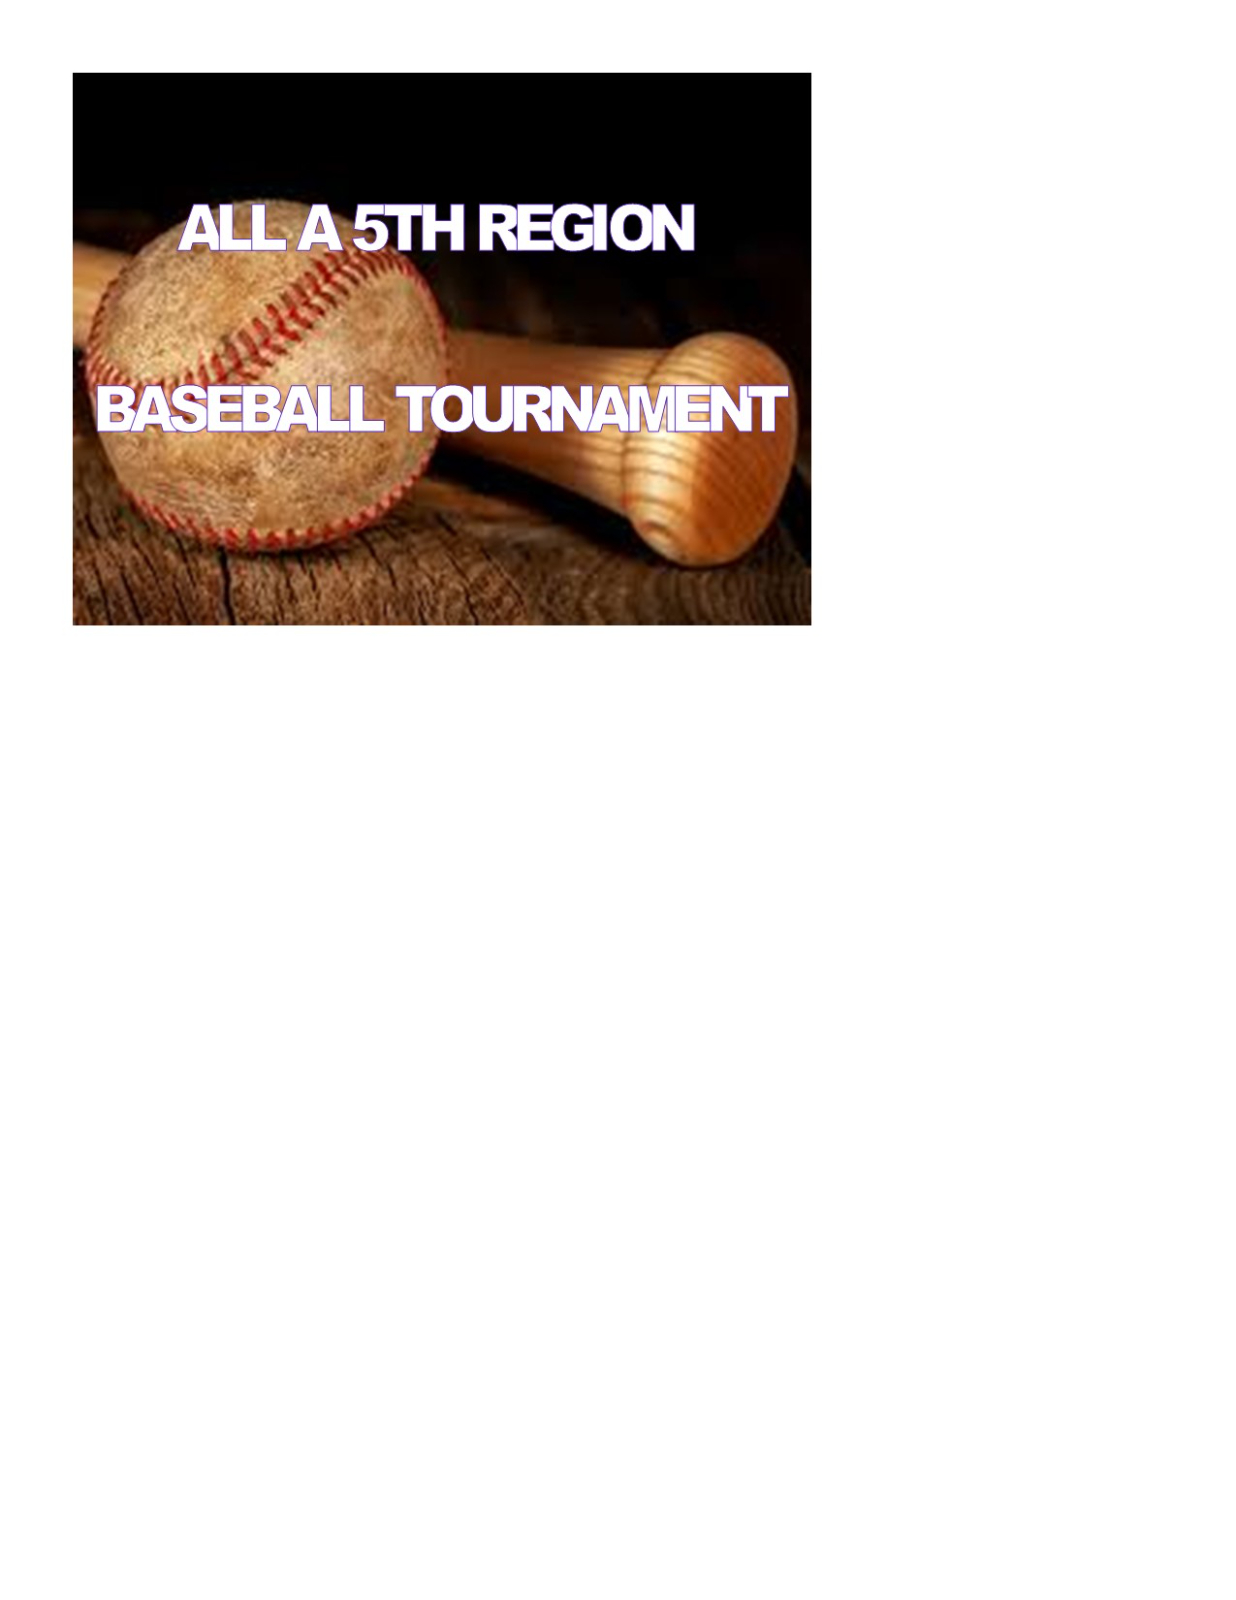 All A Baseball Regional Tournament @ CHS